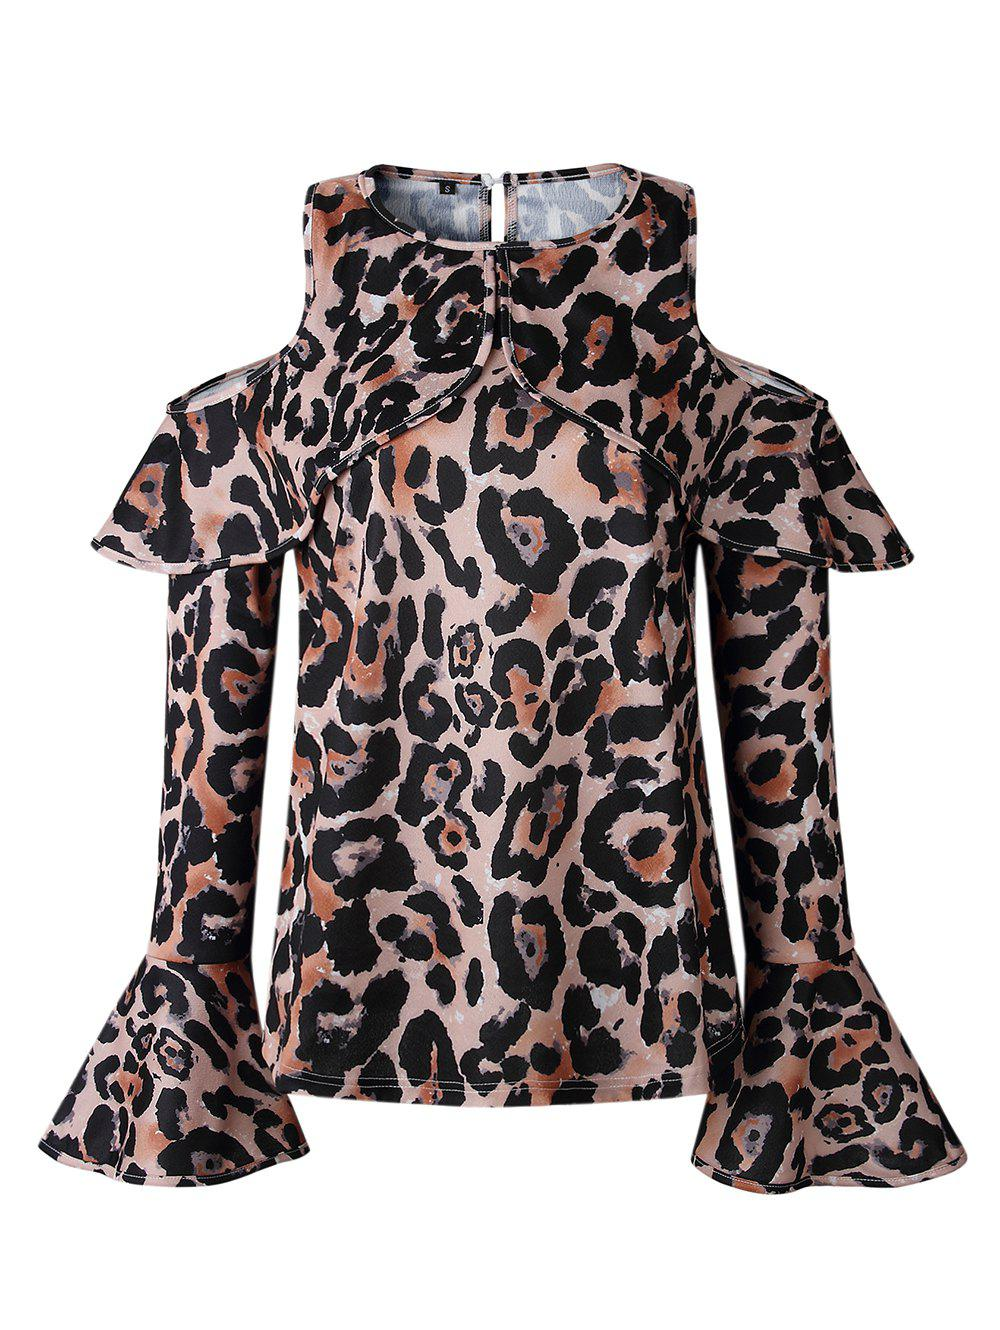 4721915e39c7a Women Sexy Top Off Shoulder Leopard Print Casual O-Neck Shirt Fashion Long  Sleeve Blouse - Xl